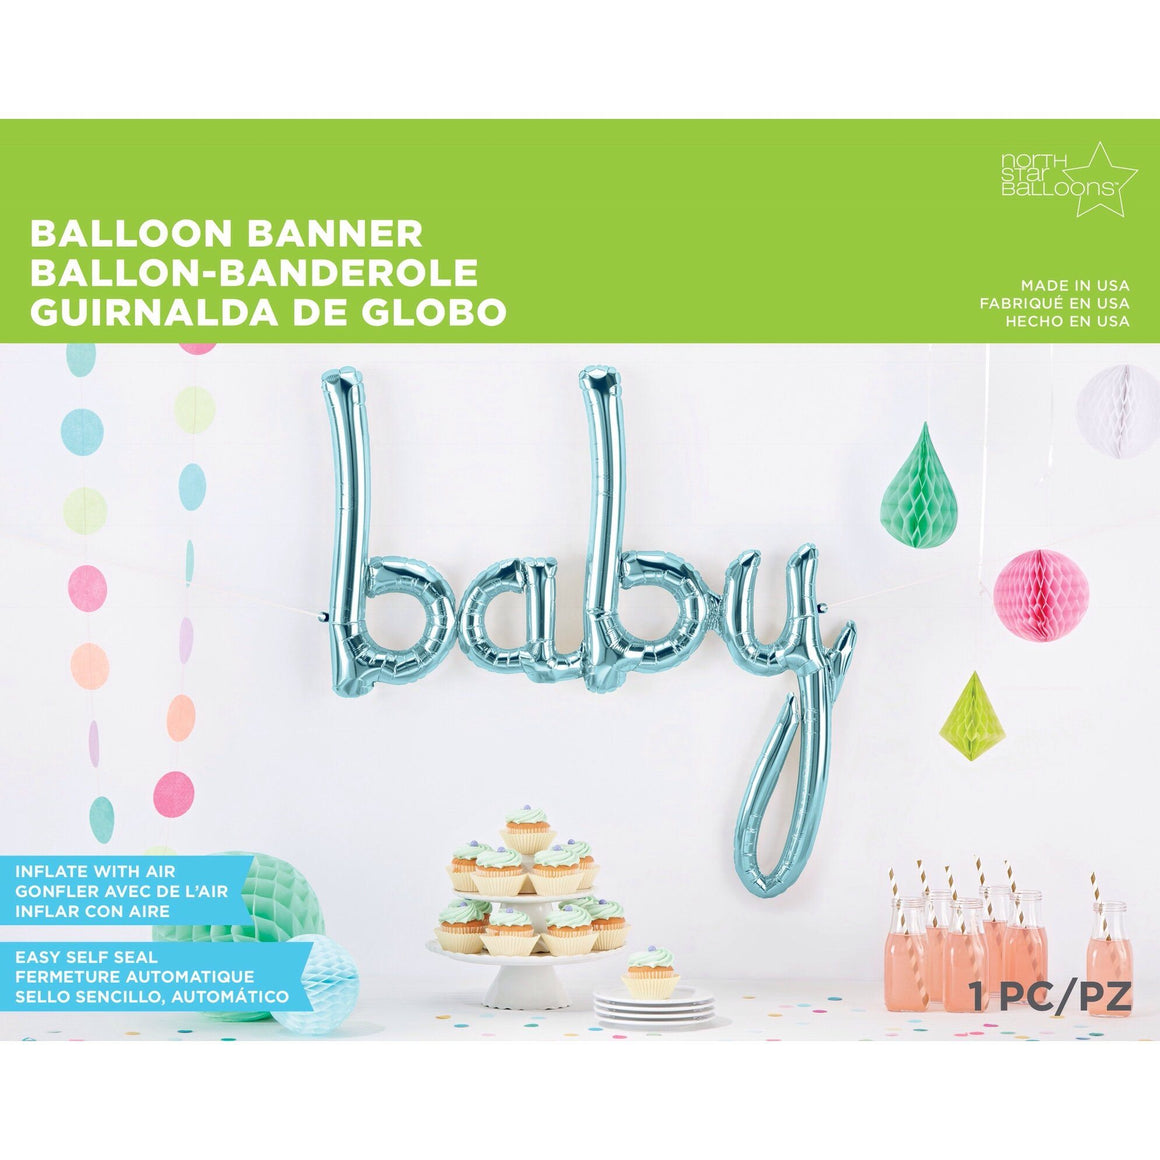 BALLOONS - SCRIPT BABY LIGHT BLUE, Balloons, Northstar (Surprize Enterprize) - Bon + Co. Party Studio